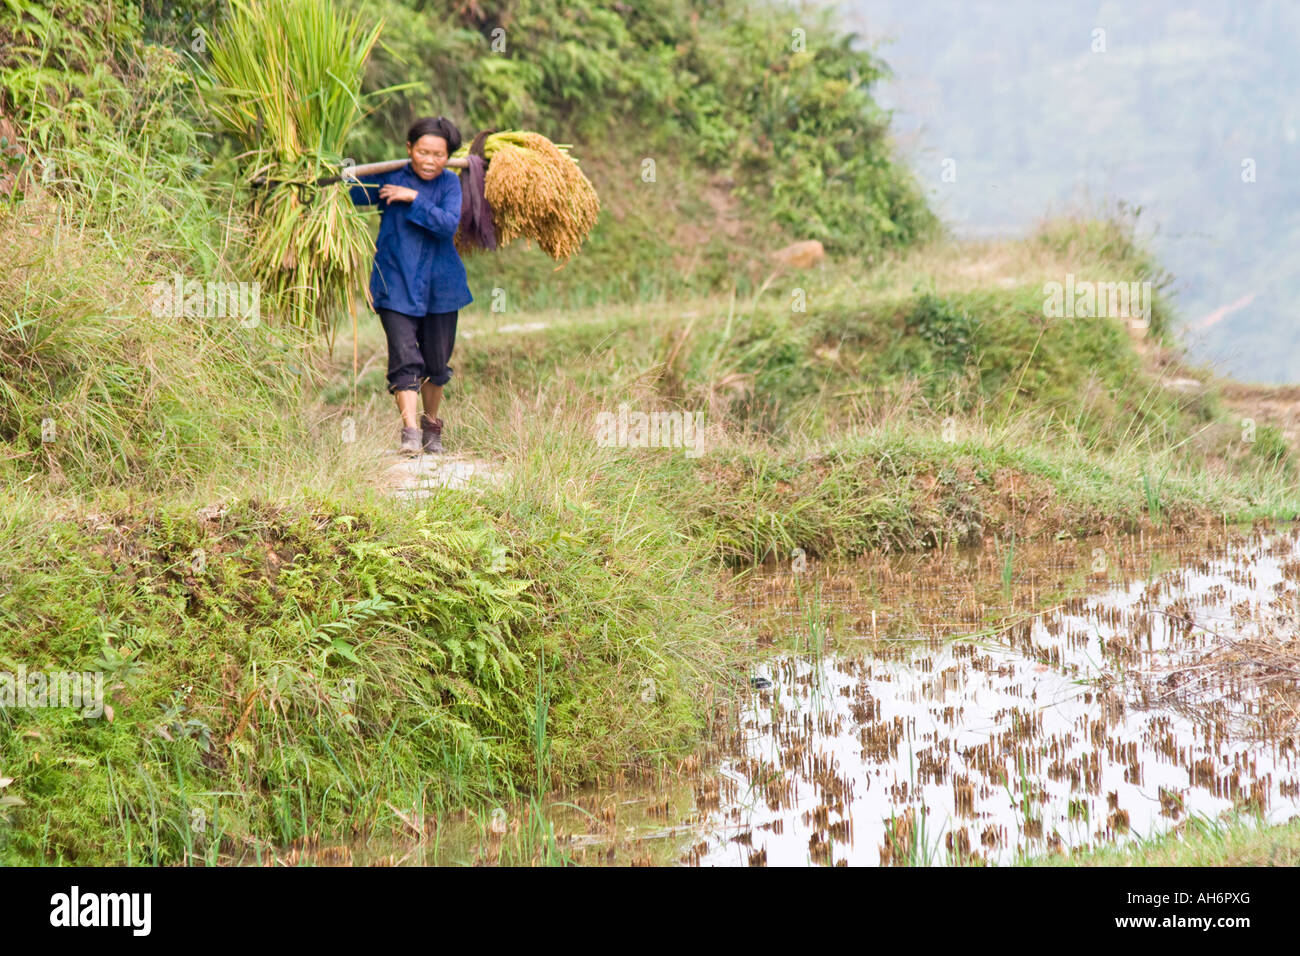 Dong Farmer Woman Shoulder Carrying Harvest from the Fields Zhaoxing China Stock Photo